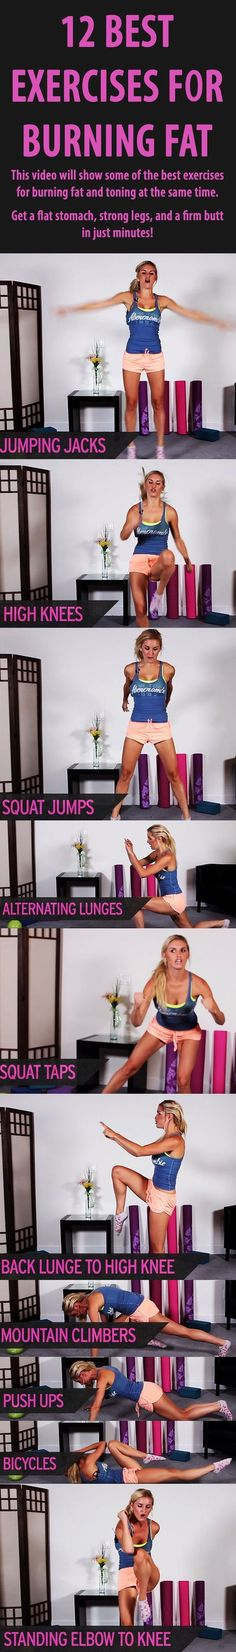 12 Great Calorie Burning Exercises